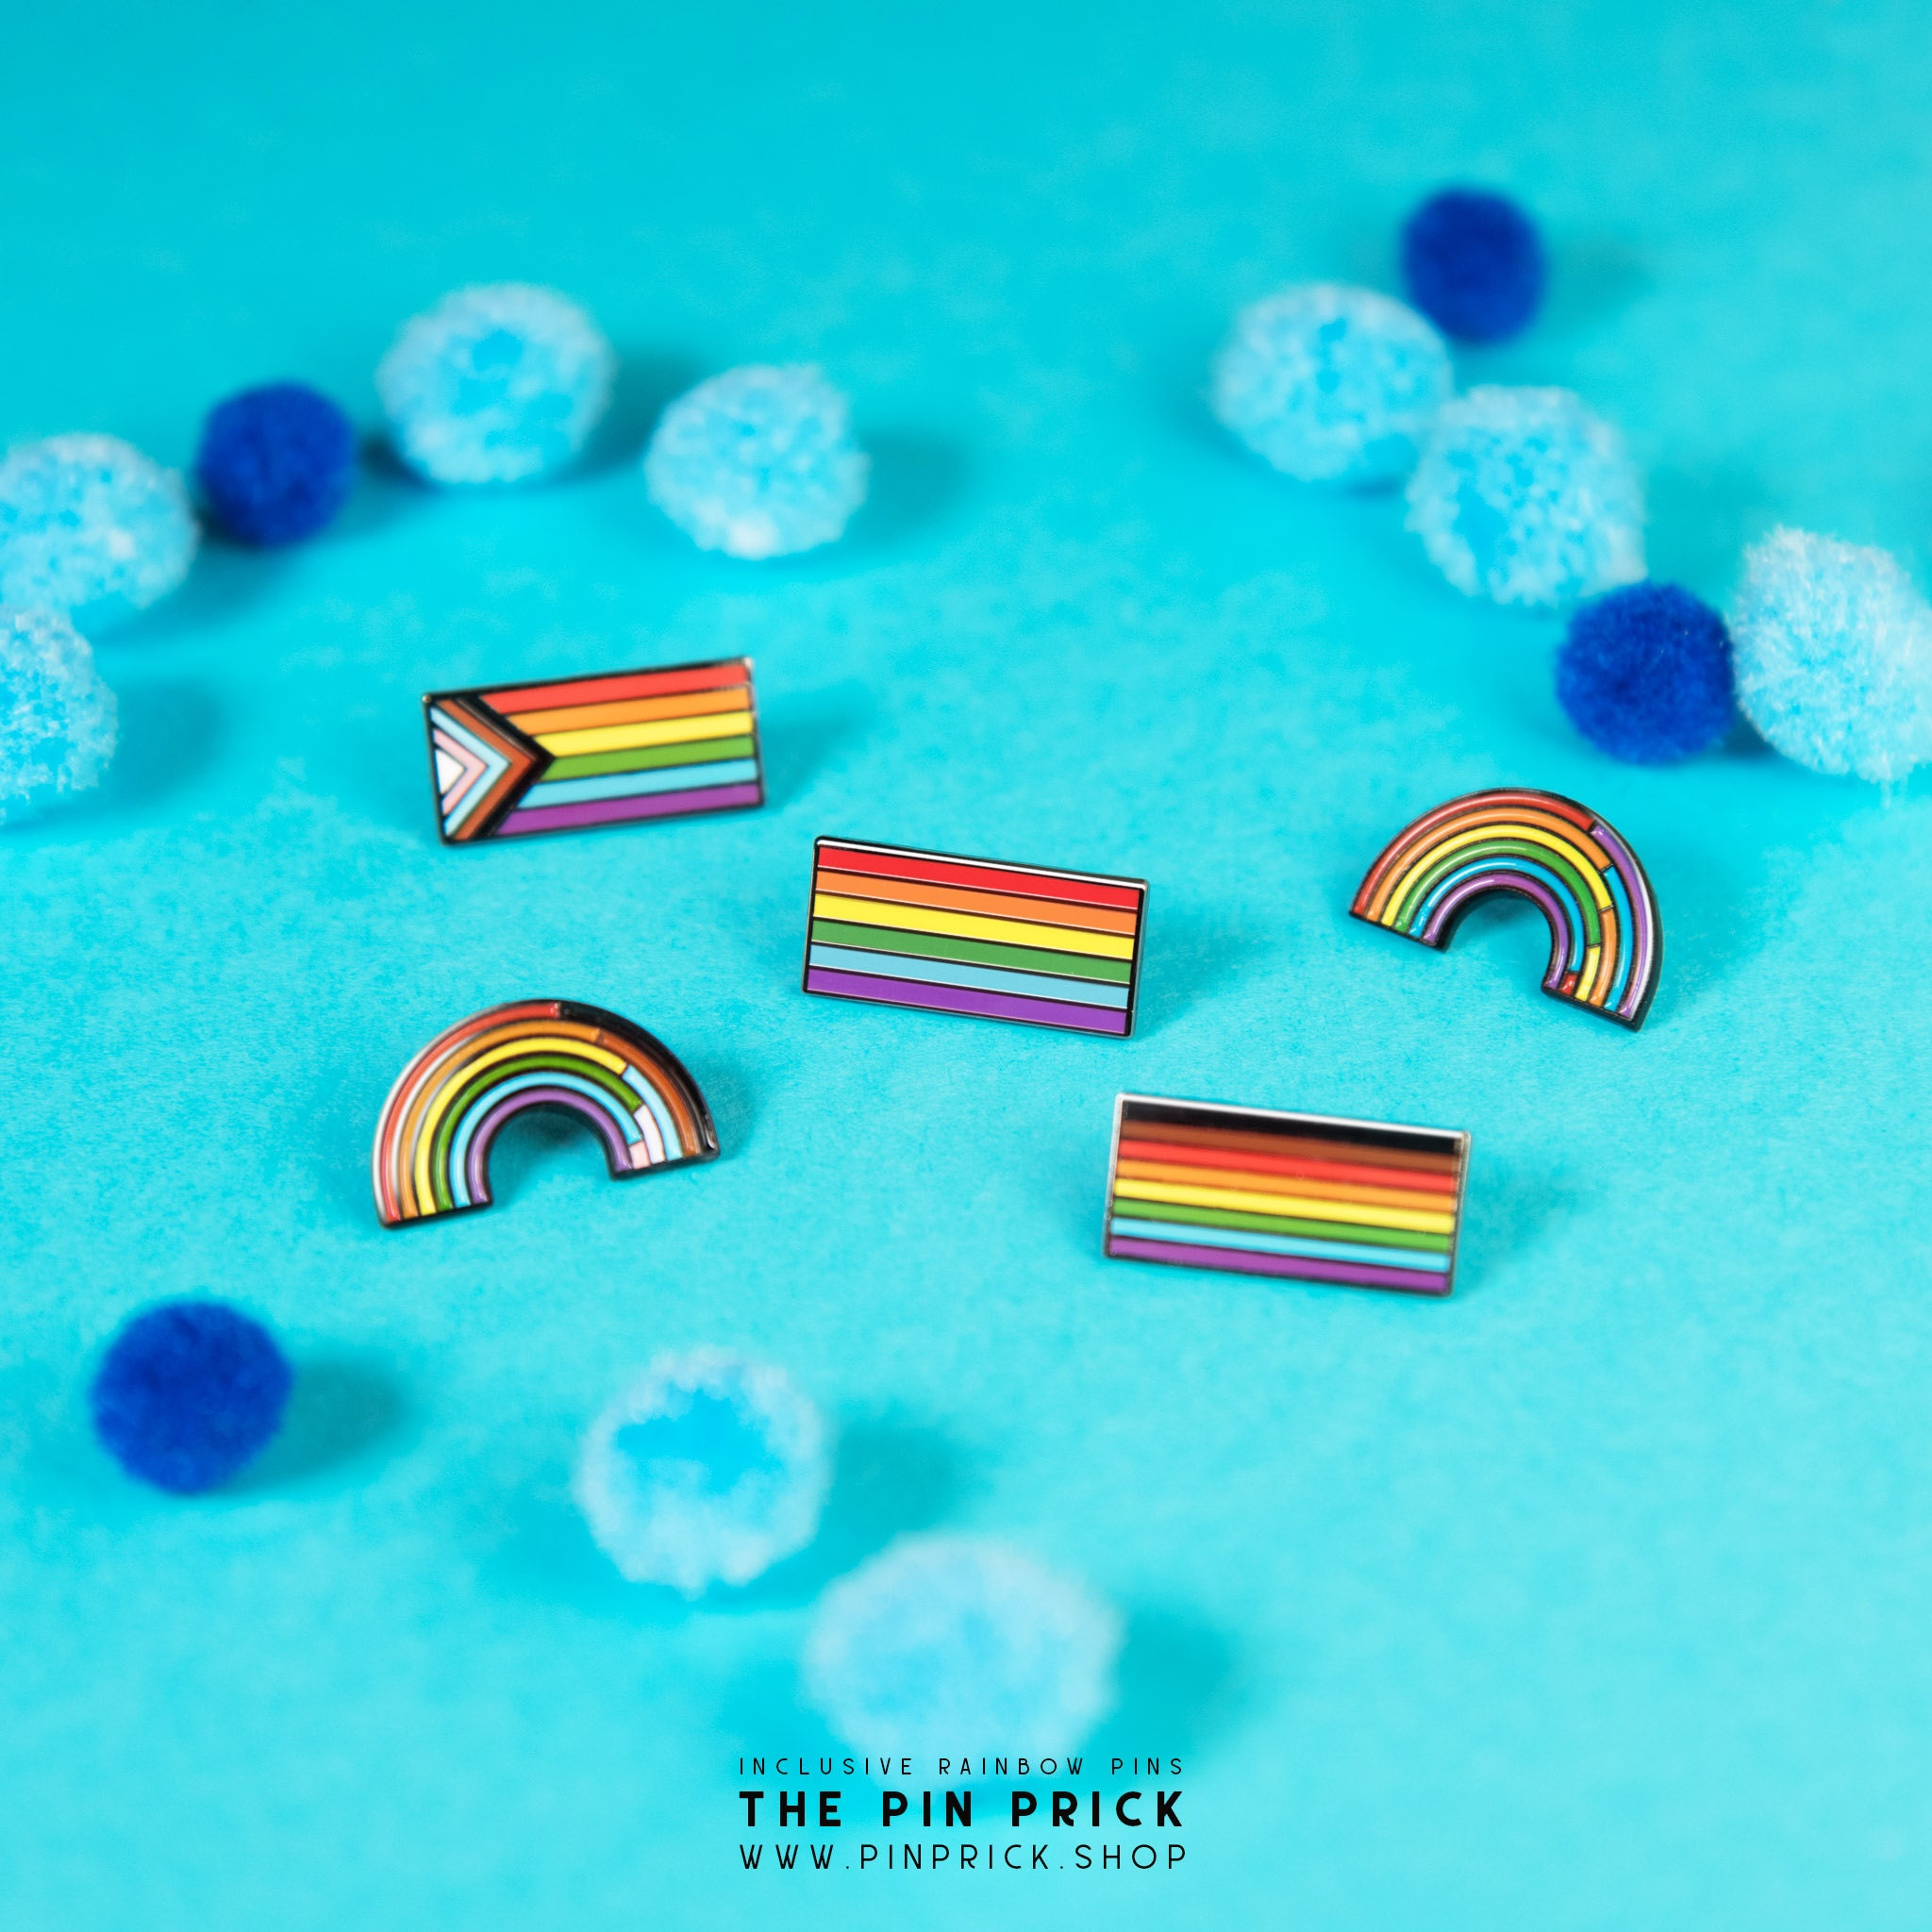 Inclusive Gay Pride Rainbow Flag Enamel Pin Accessories